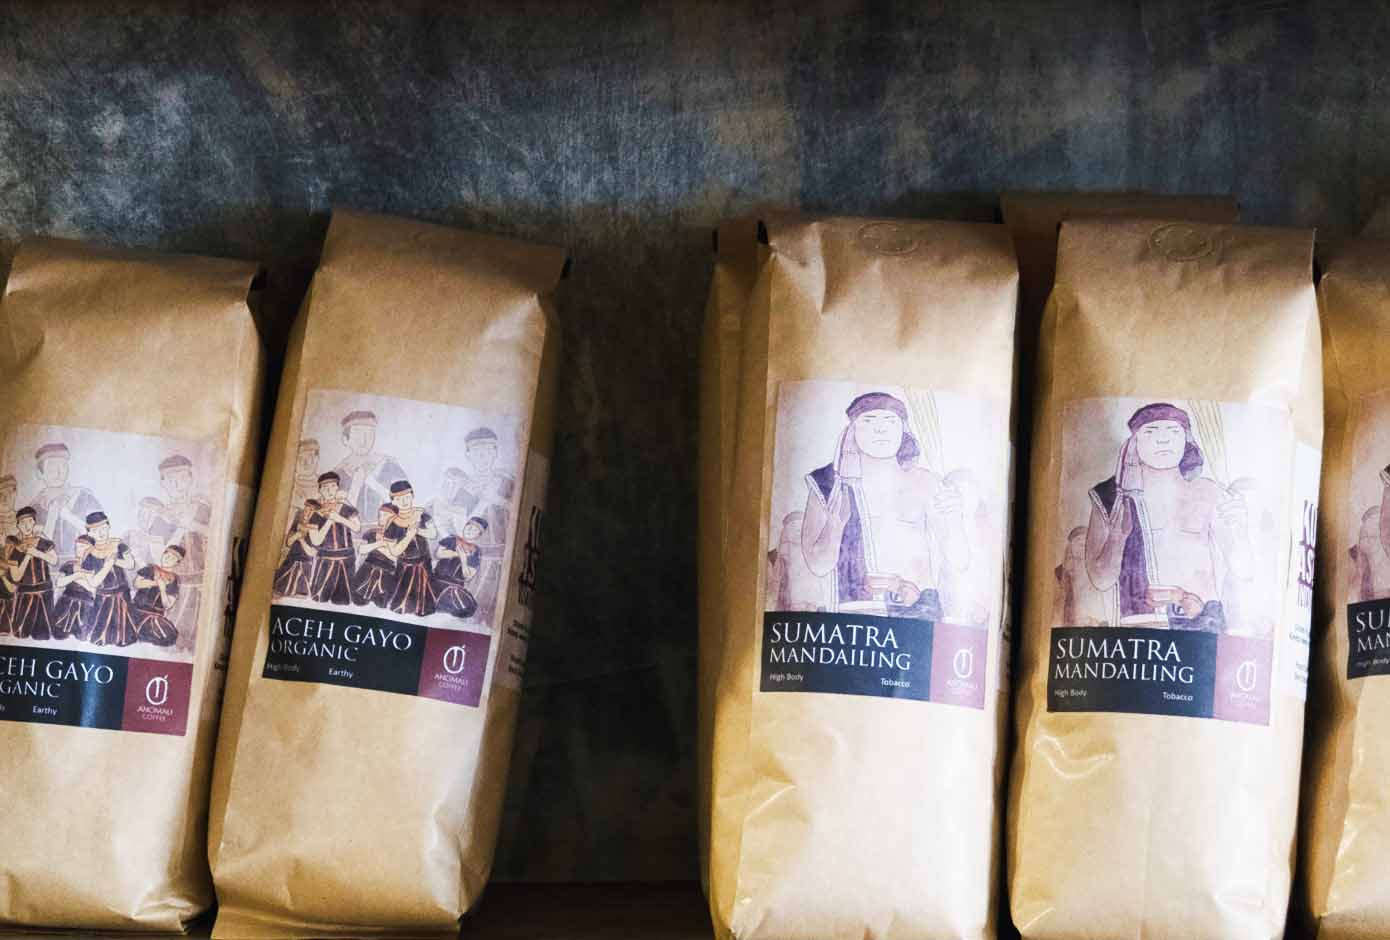 Anomali Coffee - My Top 12 Speciality Coffee and Brunch Shops in Bali | A Guide of Bali | Mondomulia